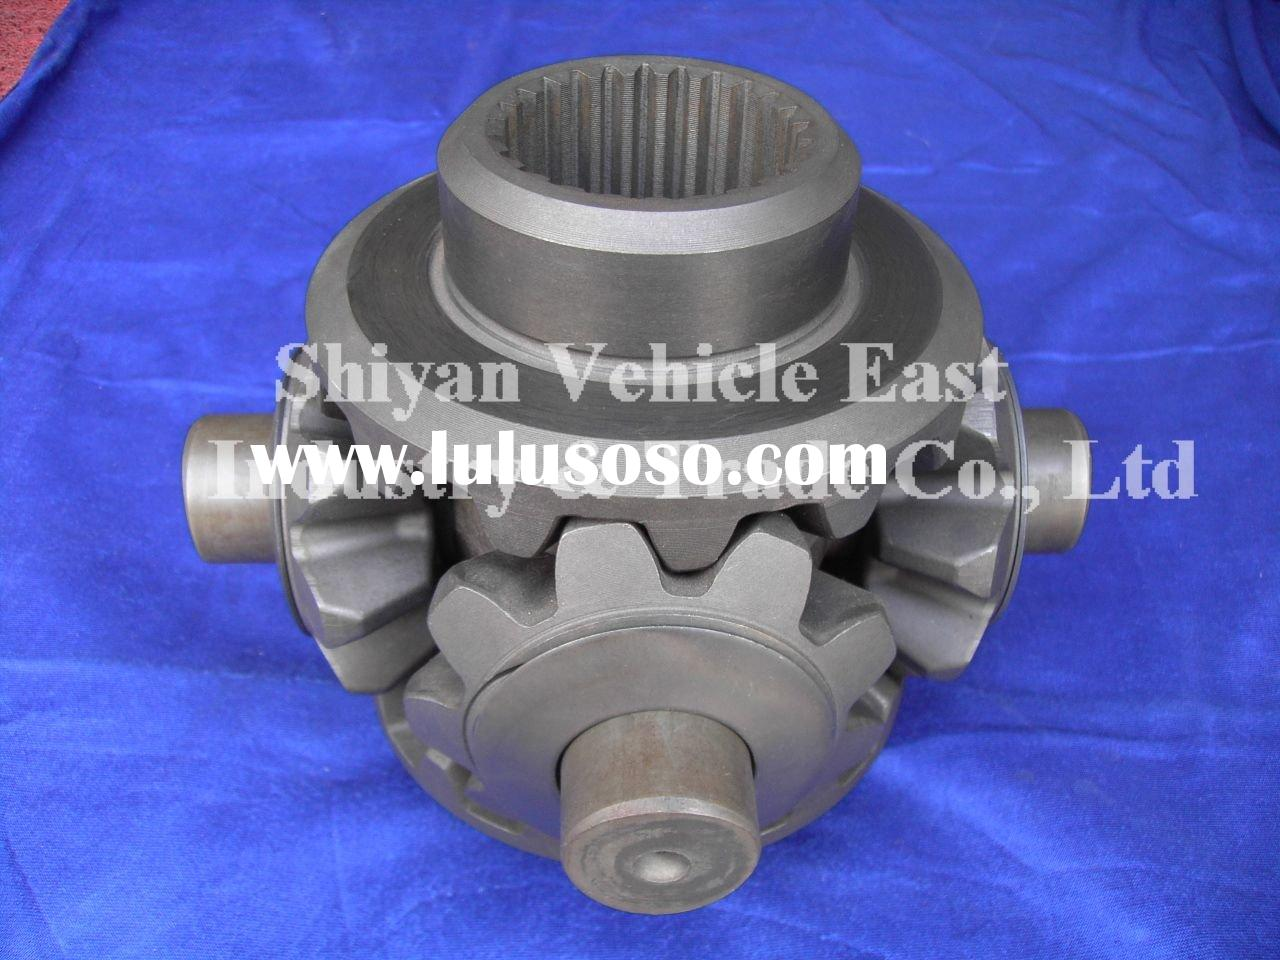 Dongfeng Planetary Gear bevel gear differential 2402ZS01-345-B